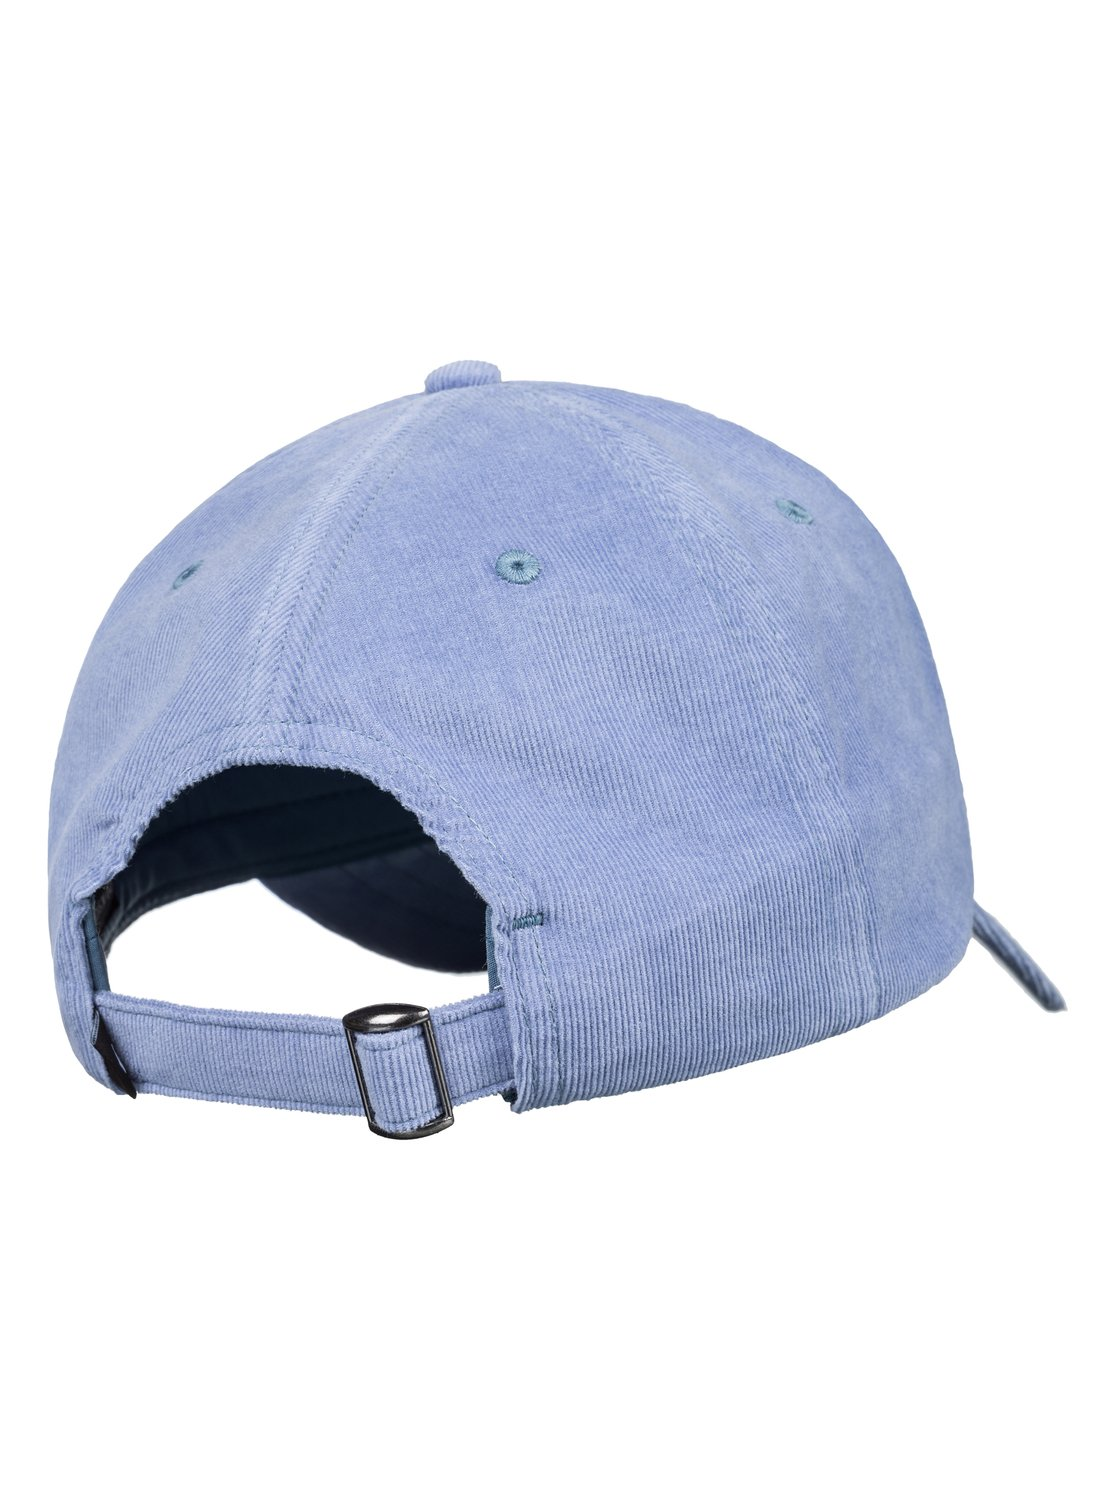 6270d0c7f29ff Quiksilver™ Labeled Dad Hat AQYHA04322